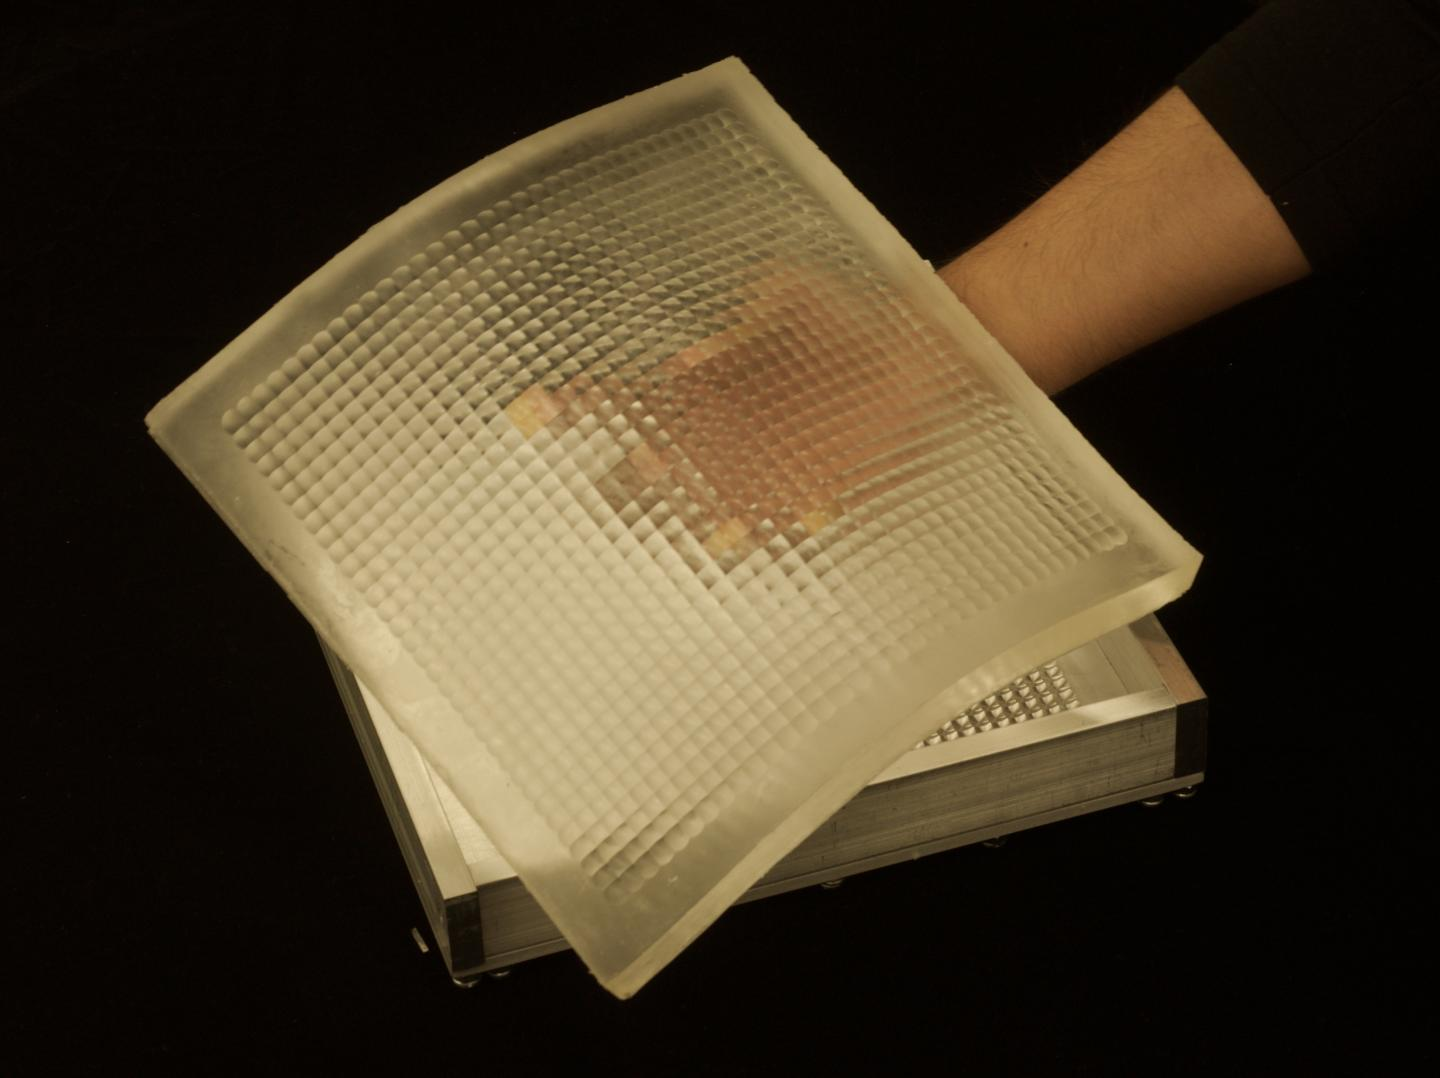 Flexible Sheet Camera Could Wrap Around Objects The